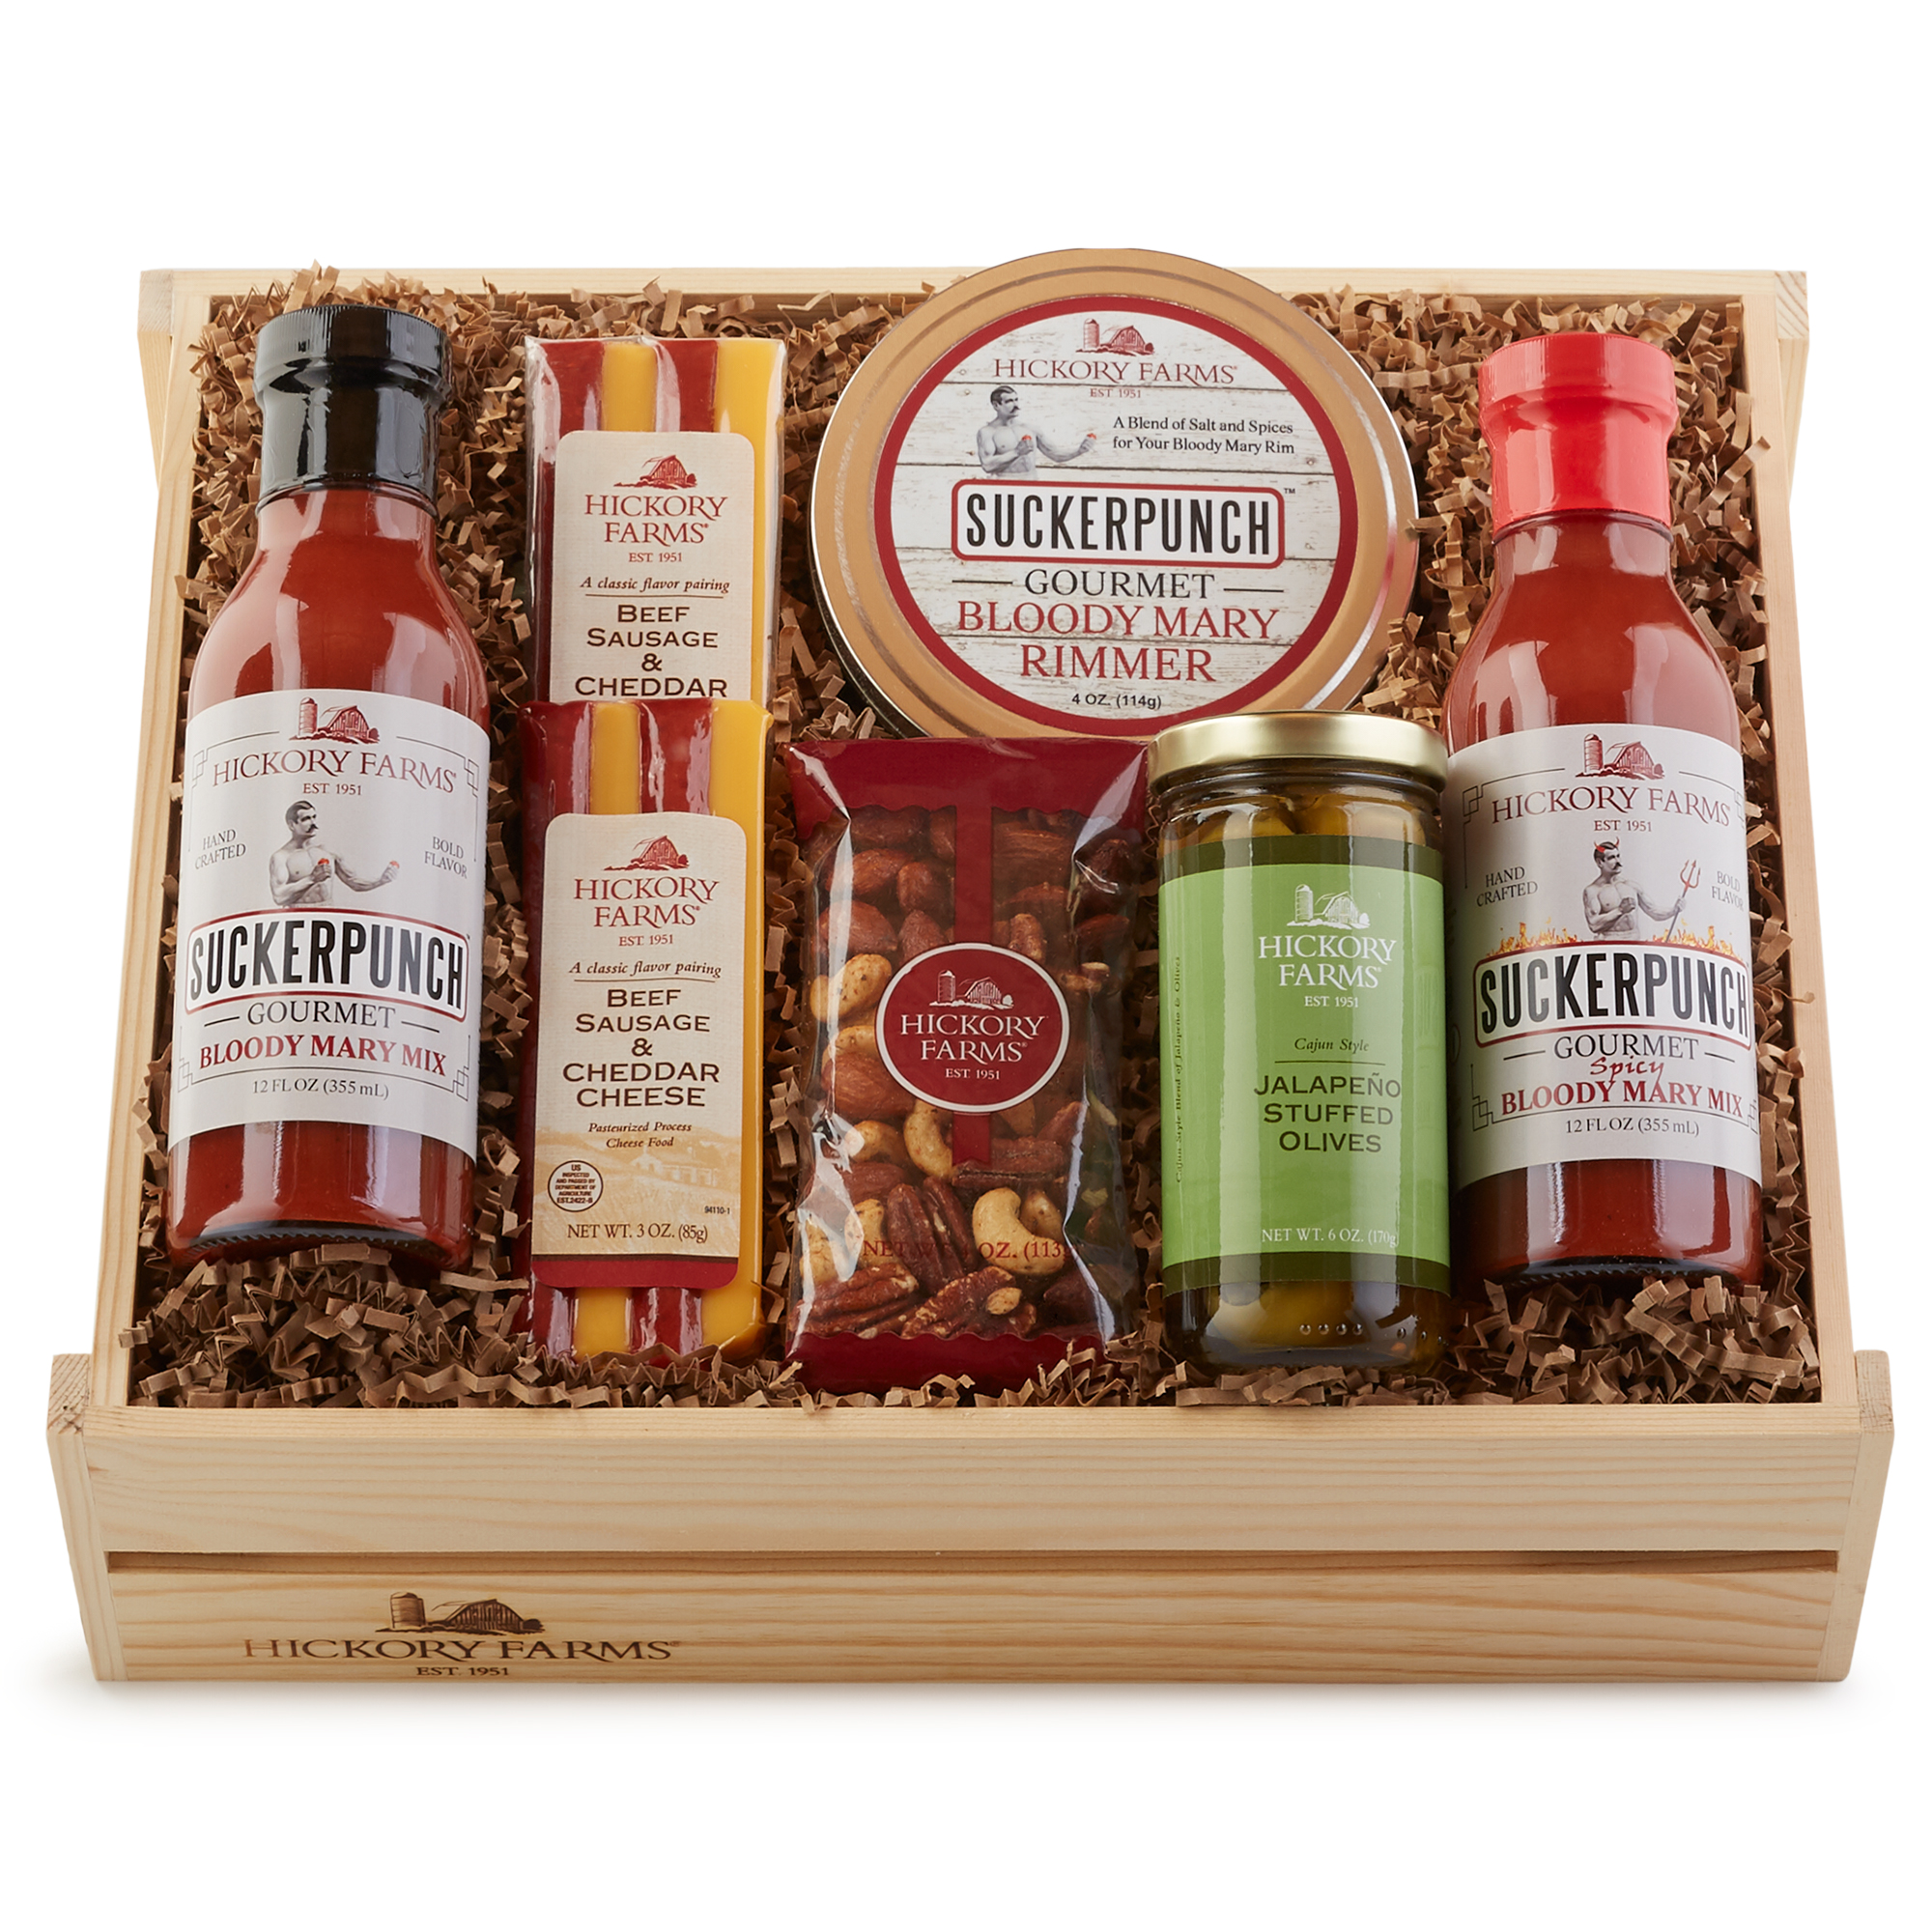 new product gift guide - Hickory Farms Gourmet Bloody Mary Crate